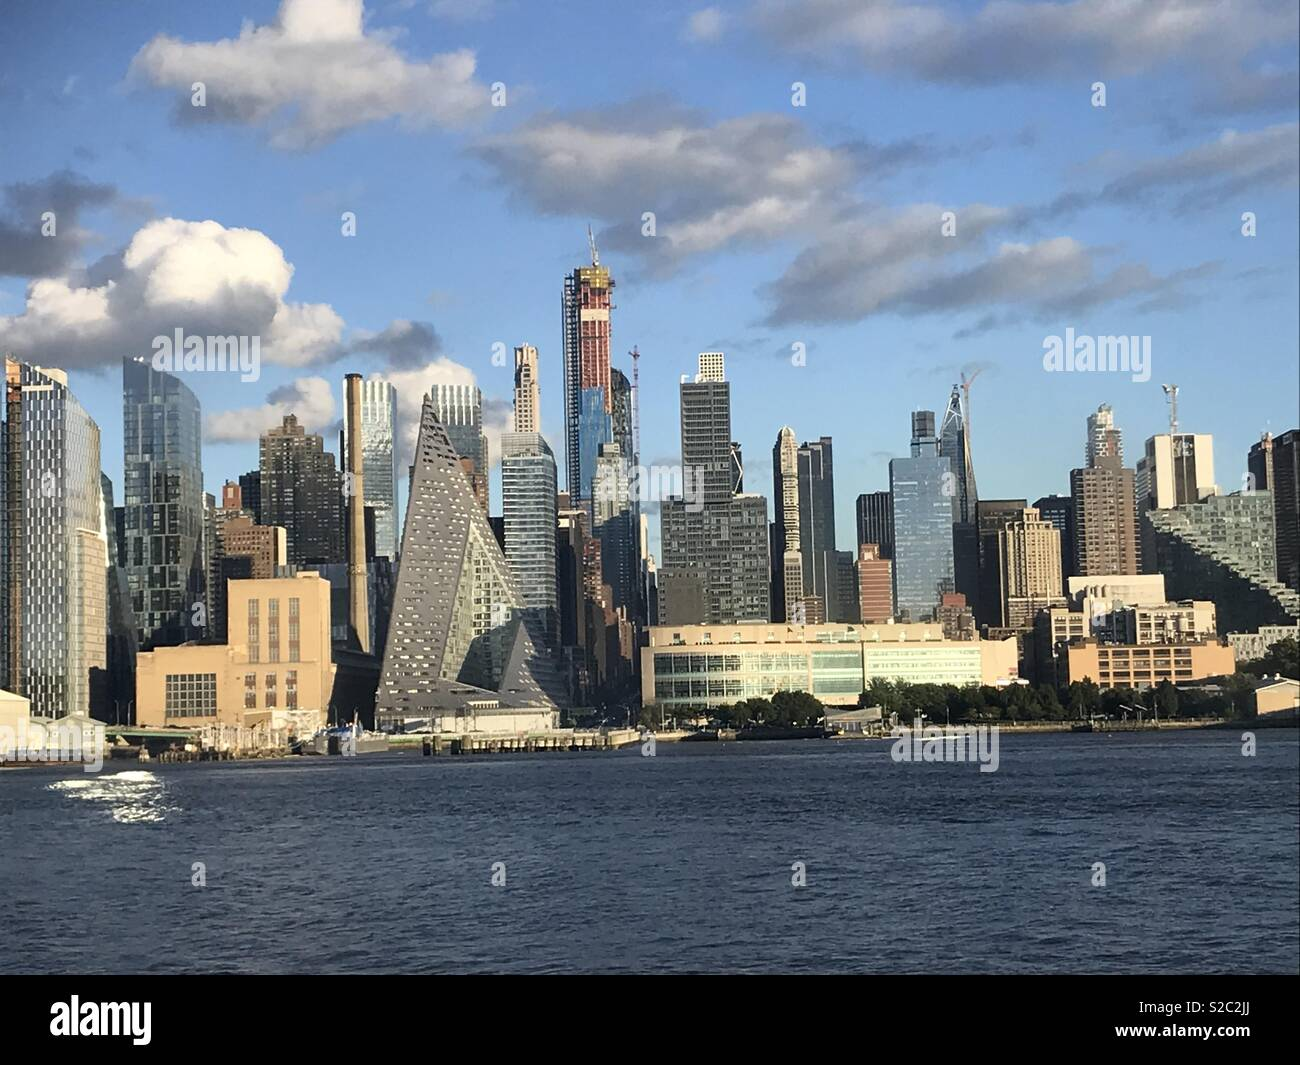 Westside skyline, Manhattan, area around W. 57th St. - Stock Image